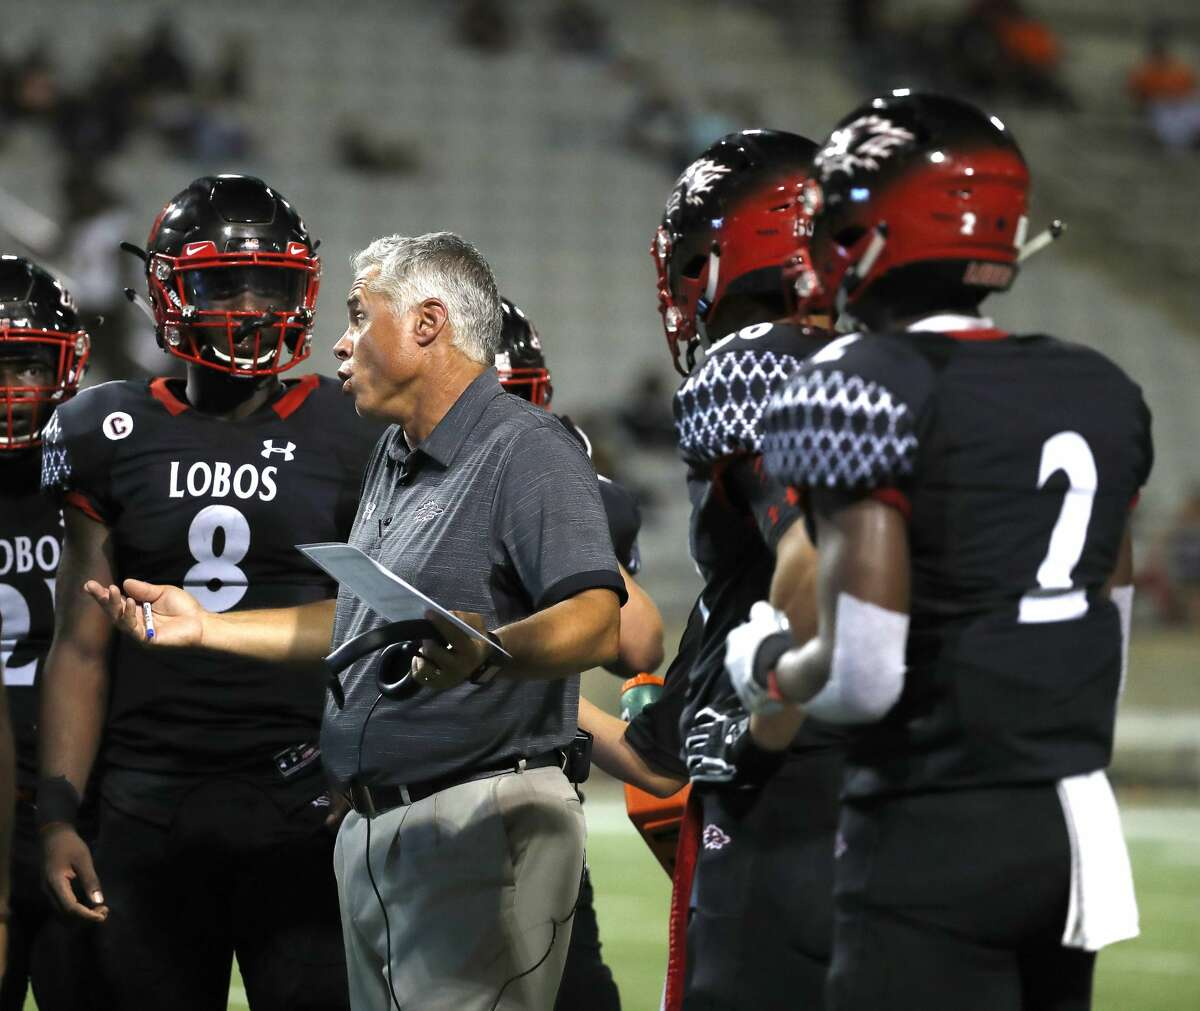 Langham Creek High School head coach Todd Thompson talks to players during the first half of a high school football game between Fort Bend Bush and Langham Creek, Thursday, September 6, 2018, at Cy-Fair FCU Stadium.